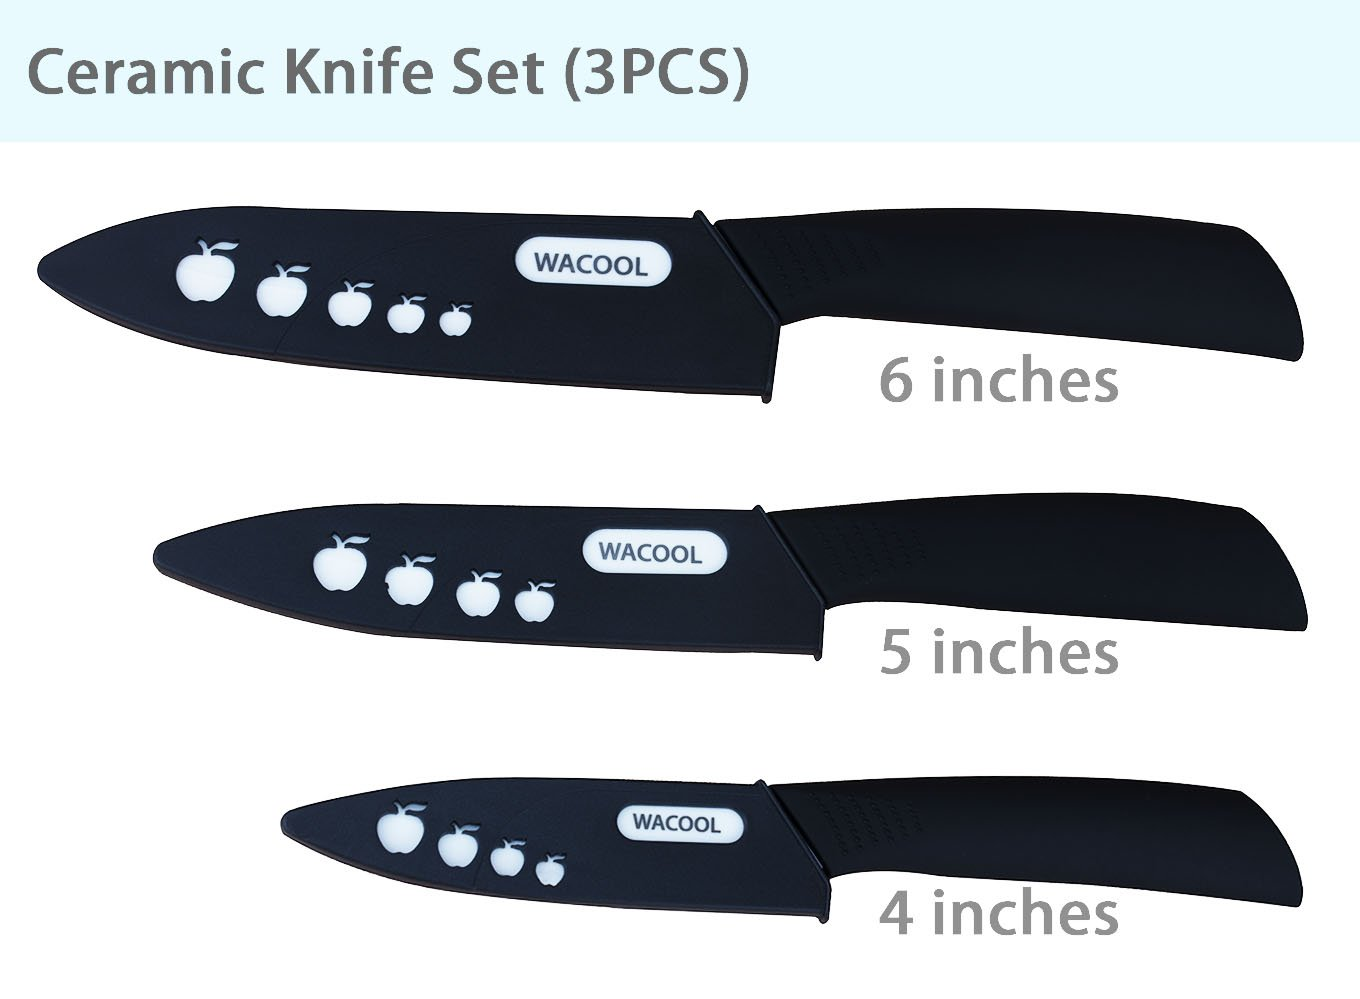 WACOOL Ceramic Knife Set 3-Piece (Includes 6-inch Chef's Knife, 5-inch Utility Knife and 4-inch Fruit Paring Knife), with 3 Knife Sheaths for Each Blade (Black Handle) by WACOOL (Image #2)